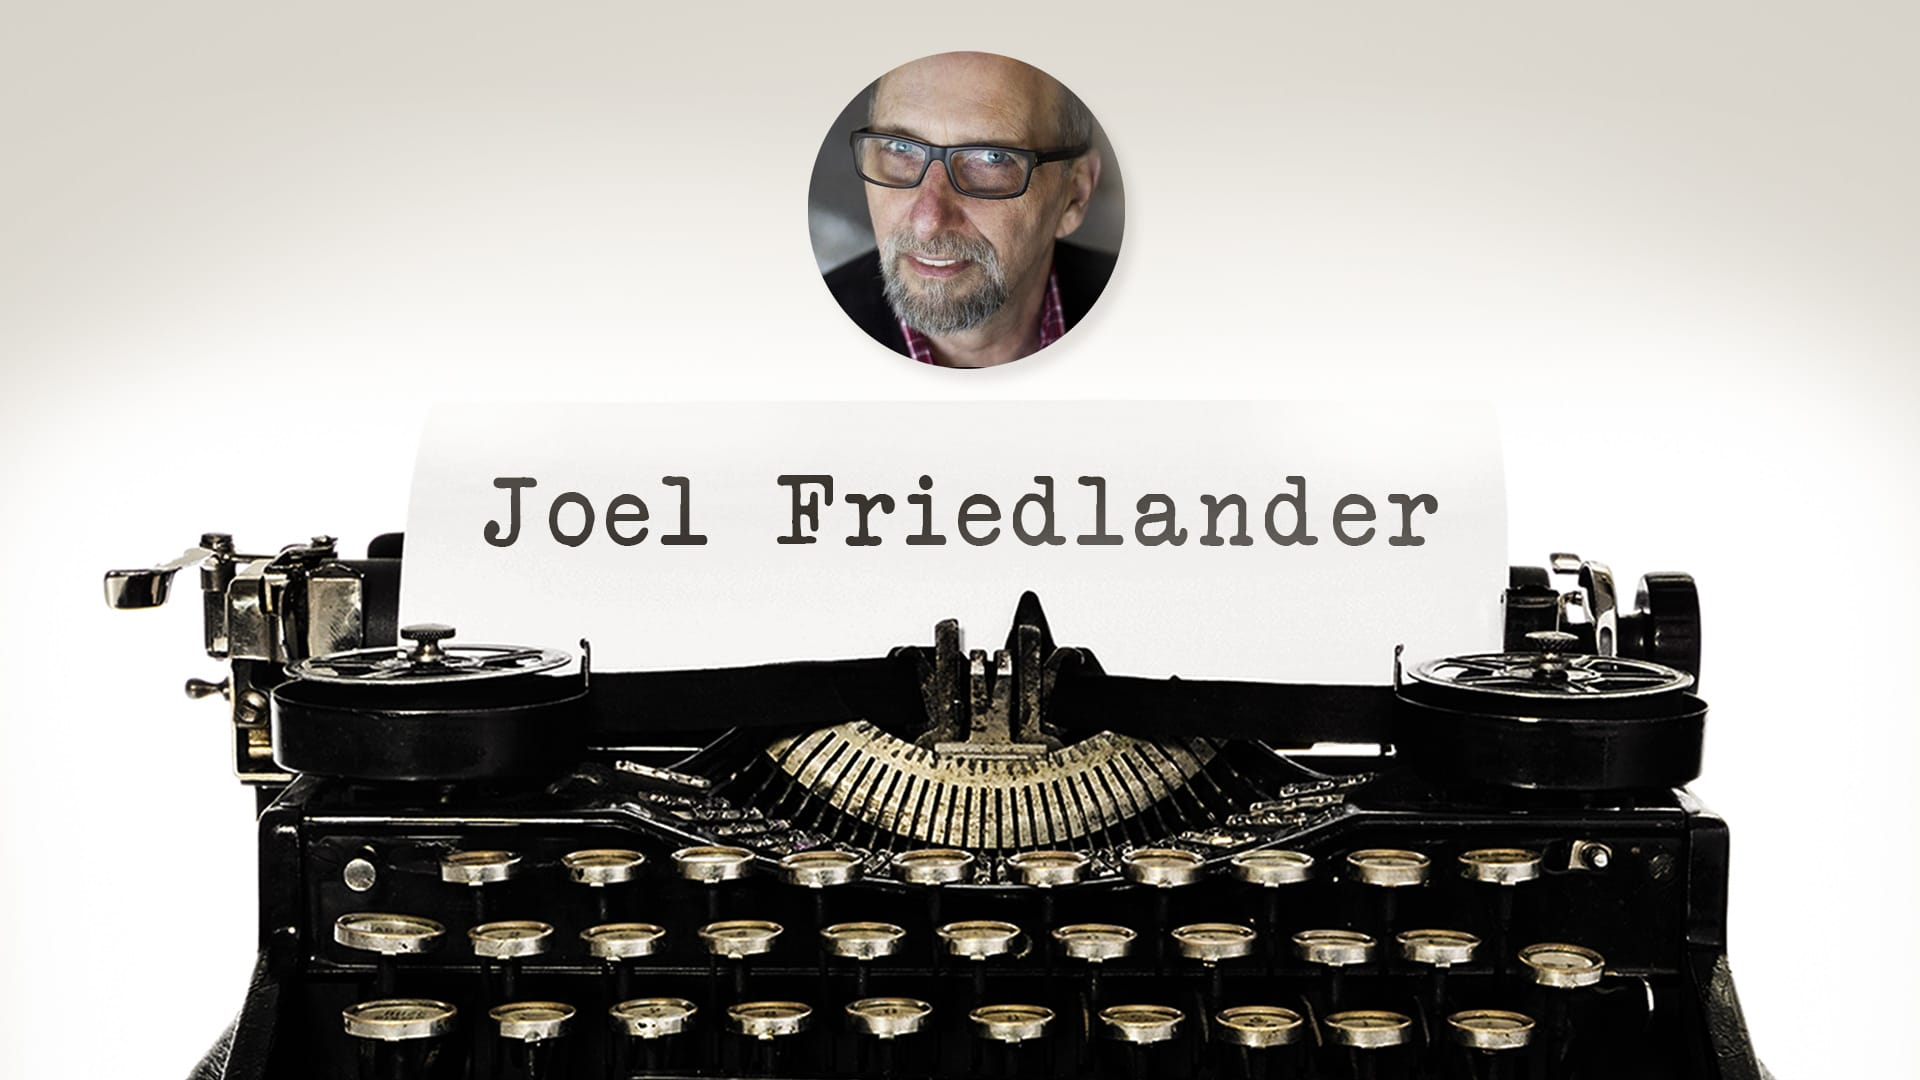 Self-Publishing Insights: Interview with Joel Friedlander